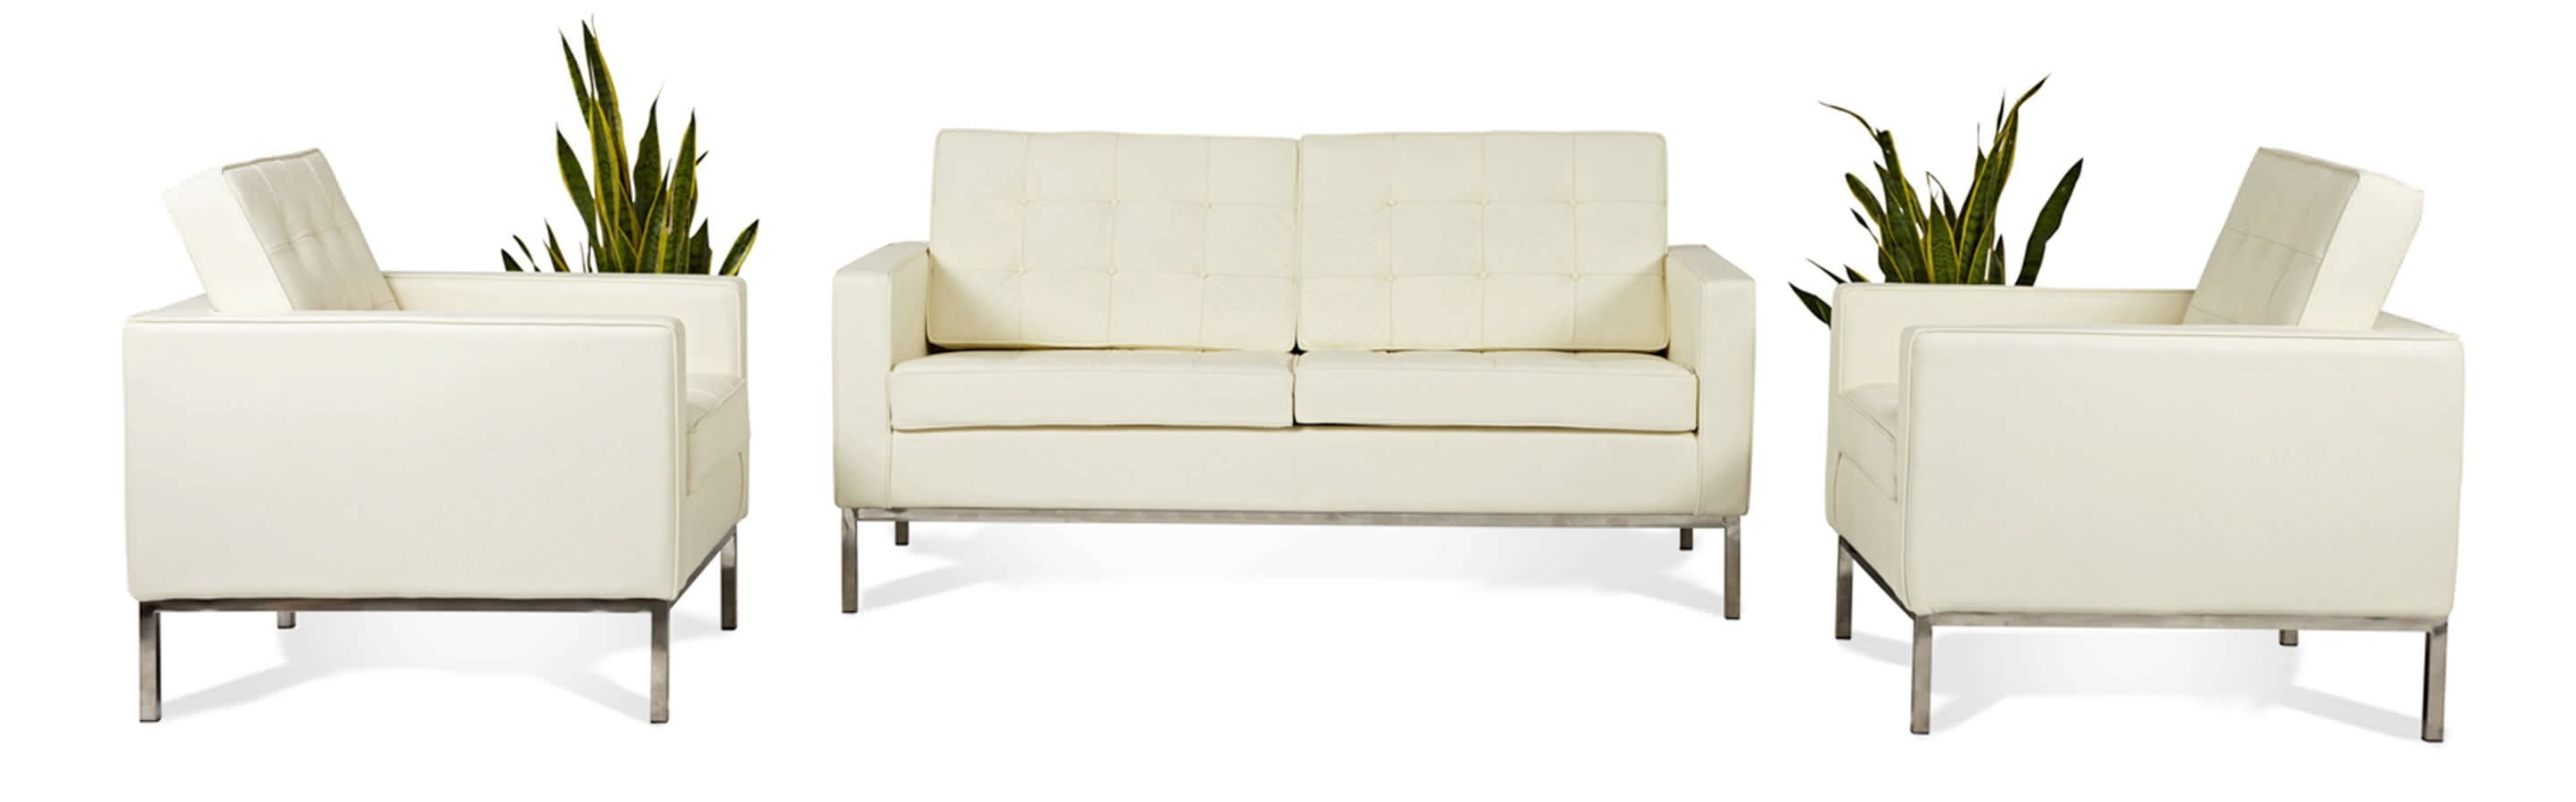 Florence Knoll Style Sofas Intended For Well Known Florence Knoll Style Loveseat 2 Seater Small Sofa Mid Century Modern (View 11 of 20)